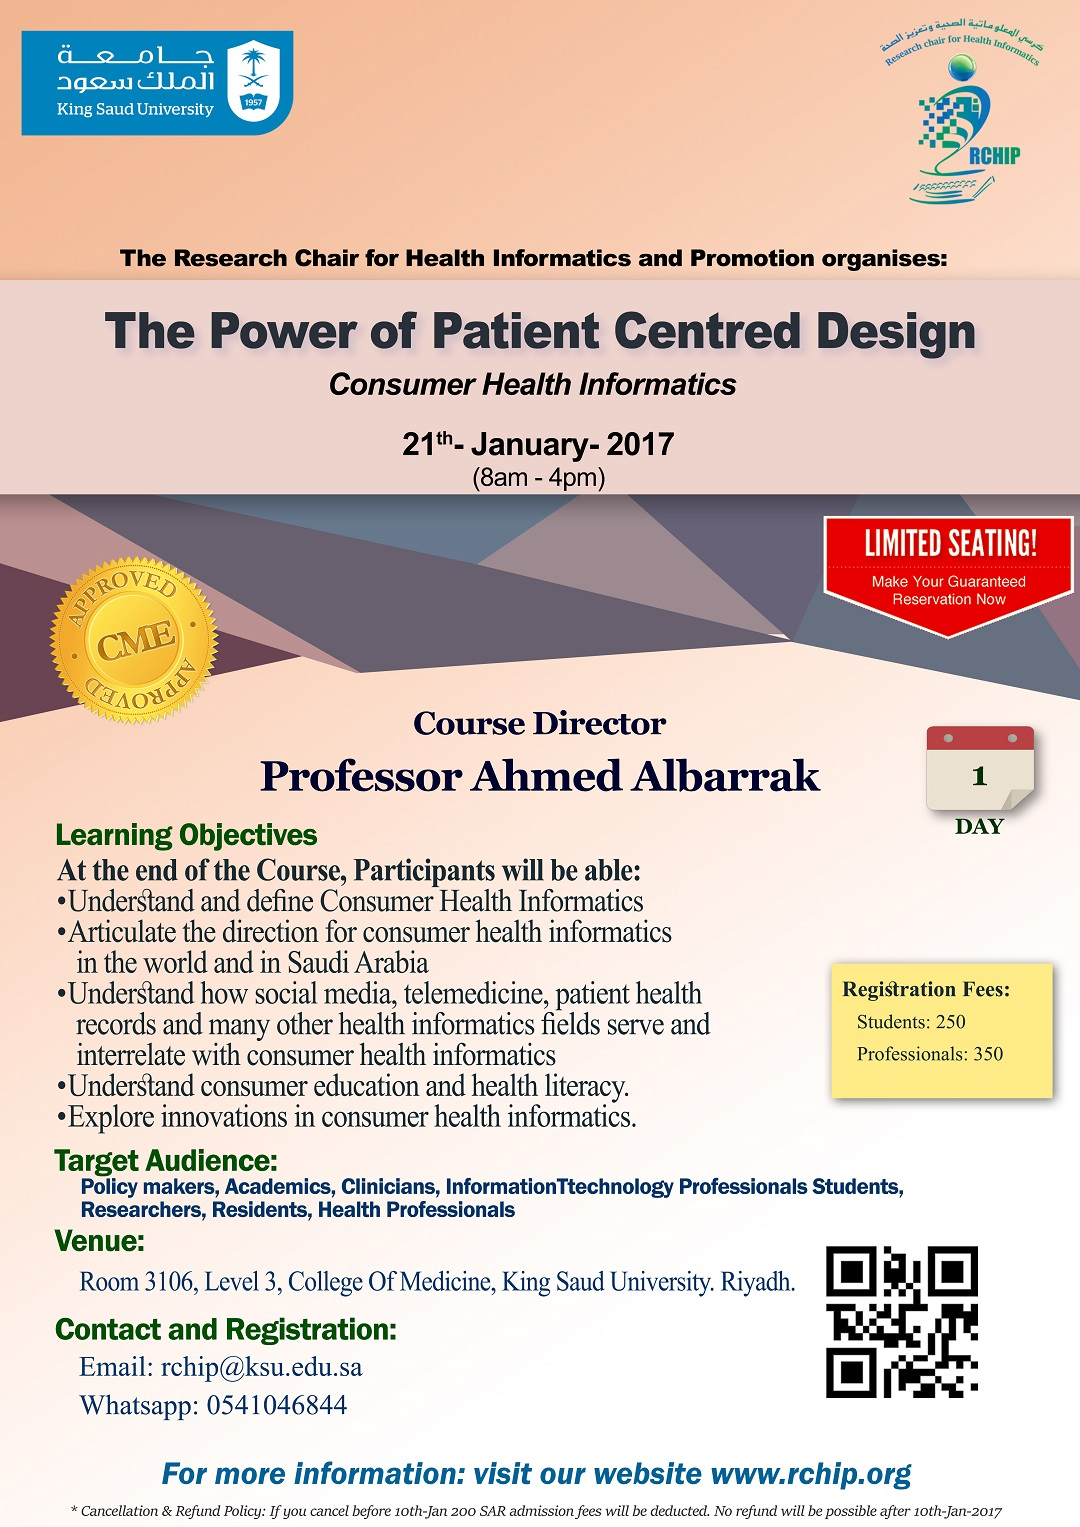 Poster By: Dr. Fuad Alhosban